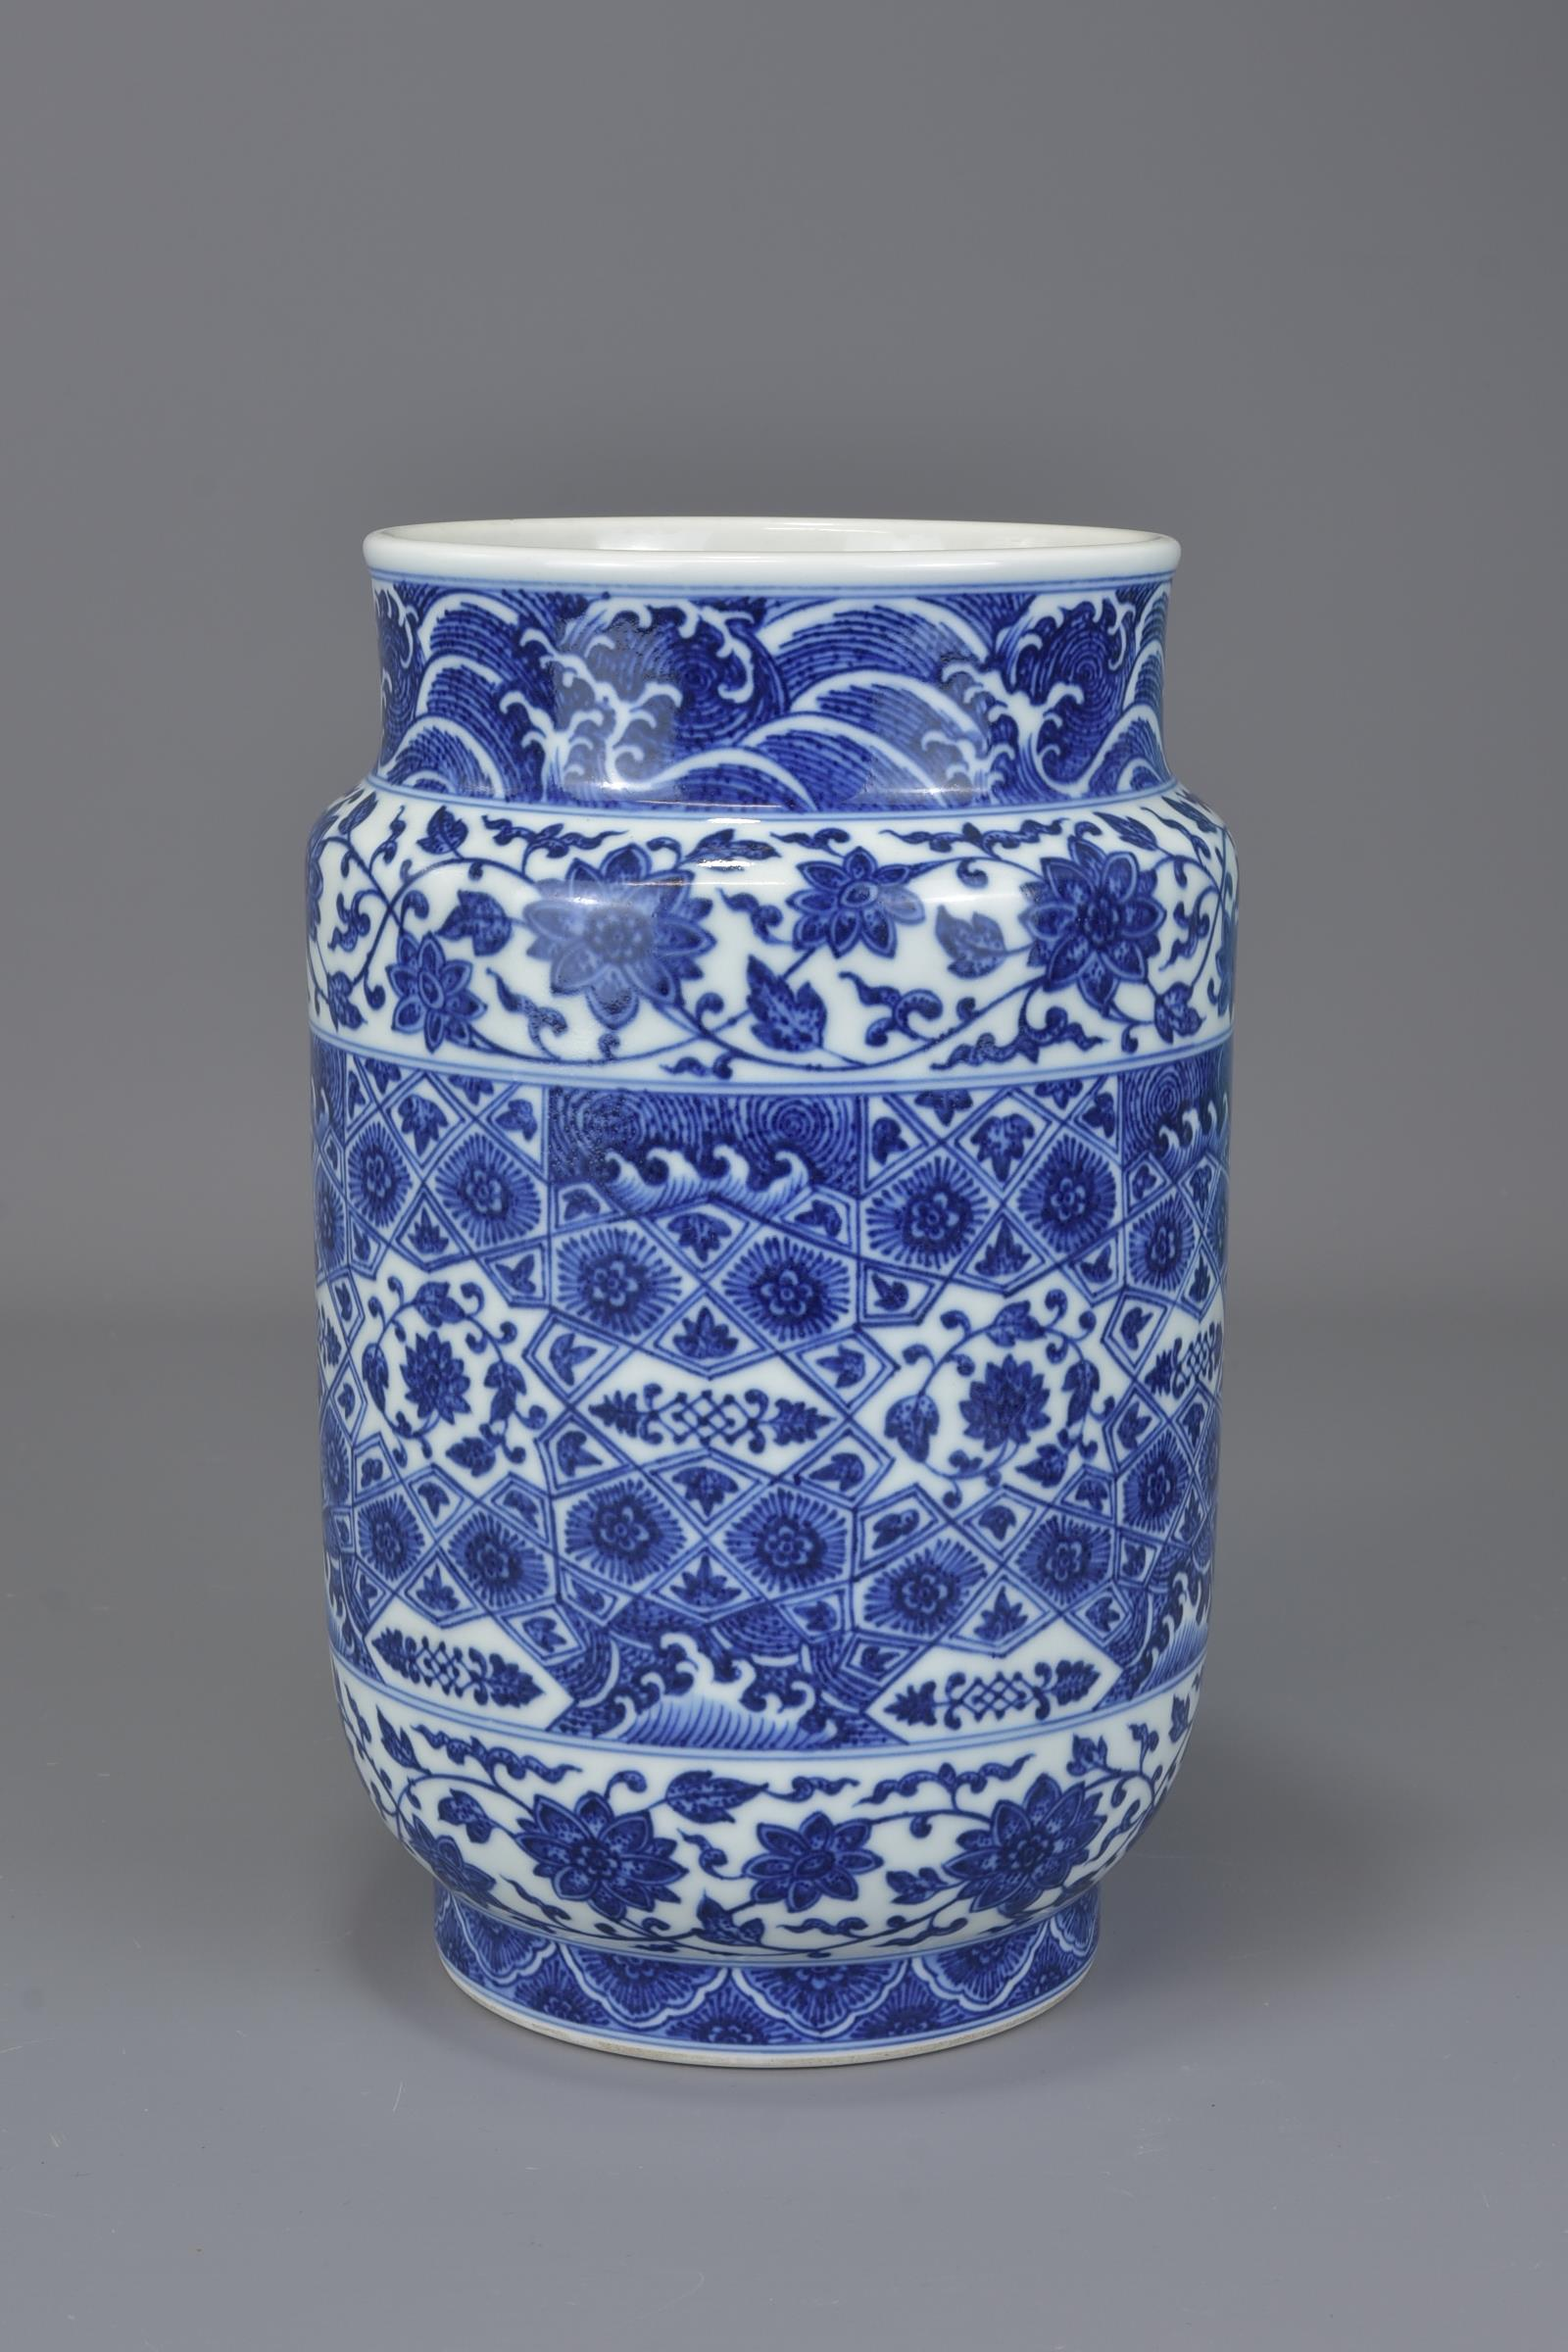 Lot 53 - A Chinese 19/20th century or earlier Ming style blue and white porcelain cylindrical vase decorated